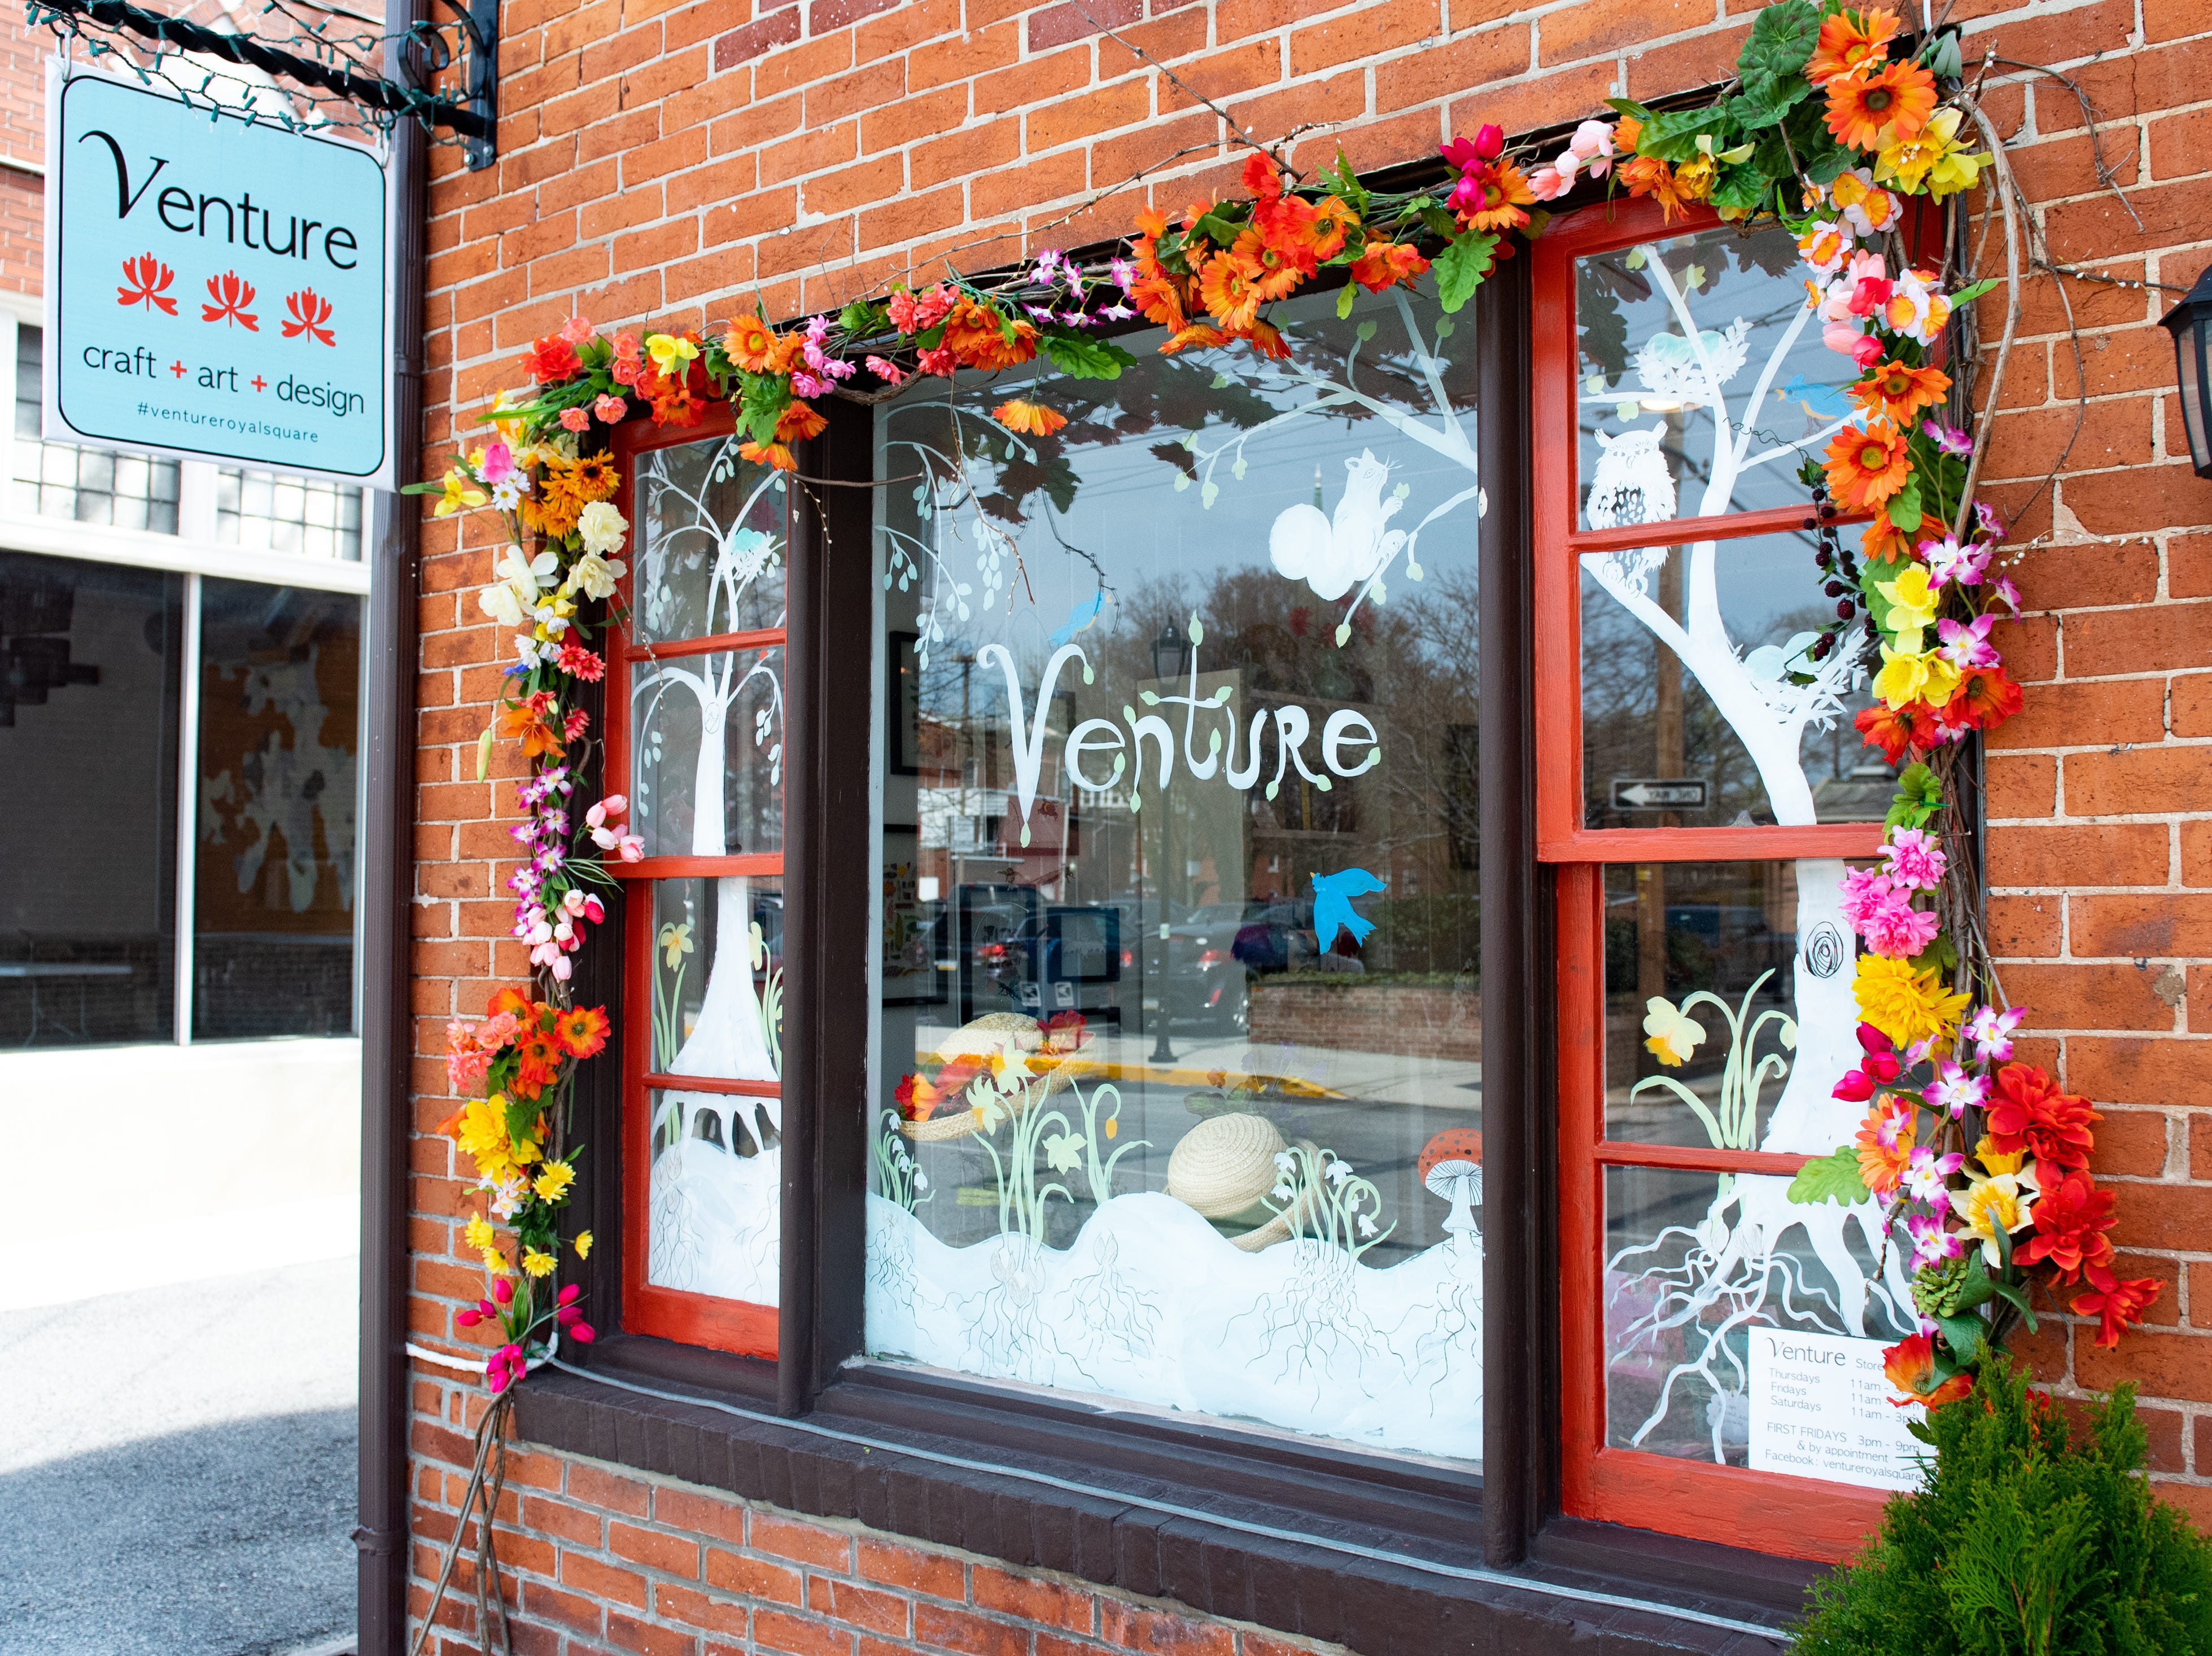 Venture is a new art gallery in downtown York that has a wide variety of unique crafts. Venture opened in Dec. 2018 and joins the Gallery 110 and The Dark Parlour  as the newest additions to the Parliament Arts Organization in the Royal Square District, April 11, 2019.